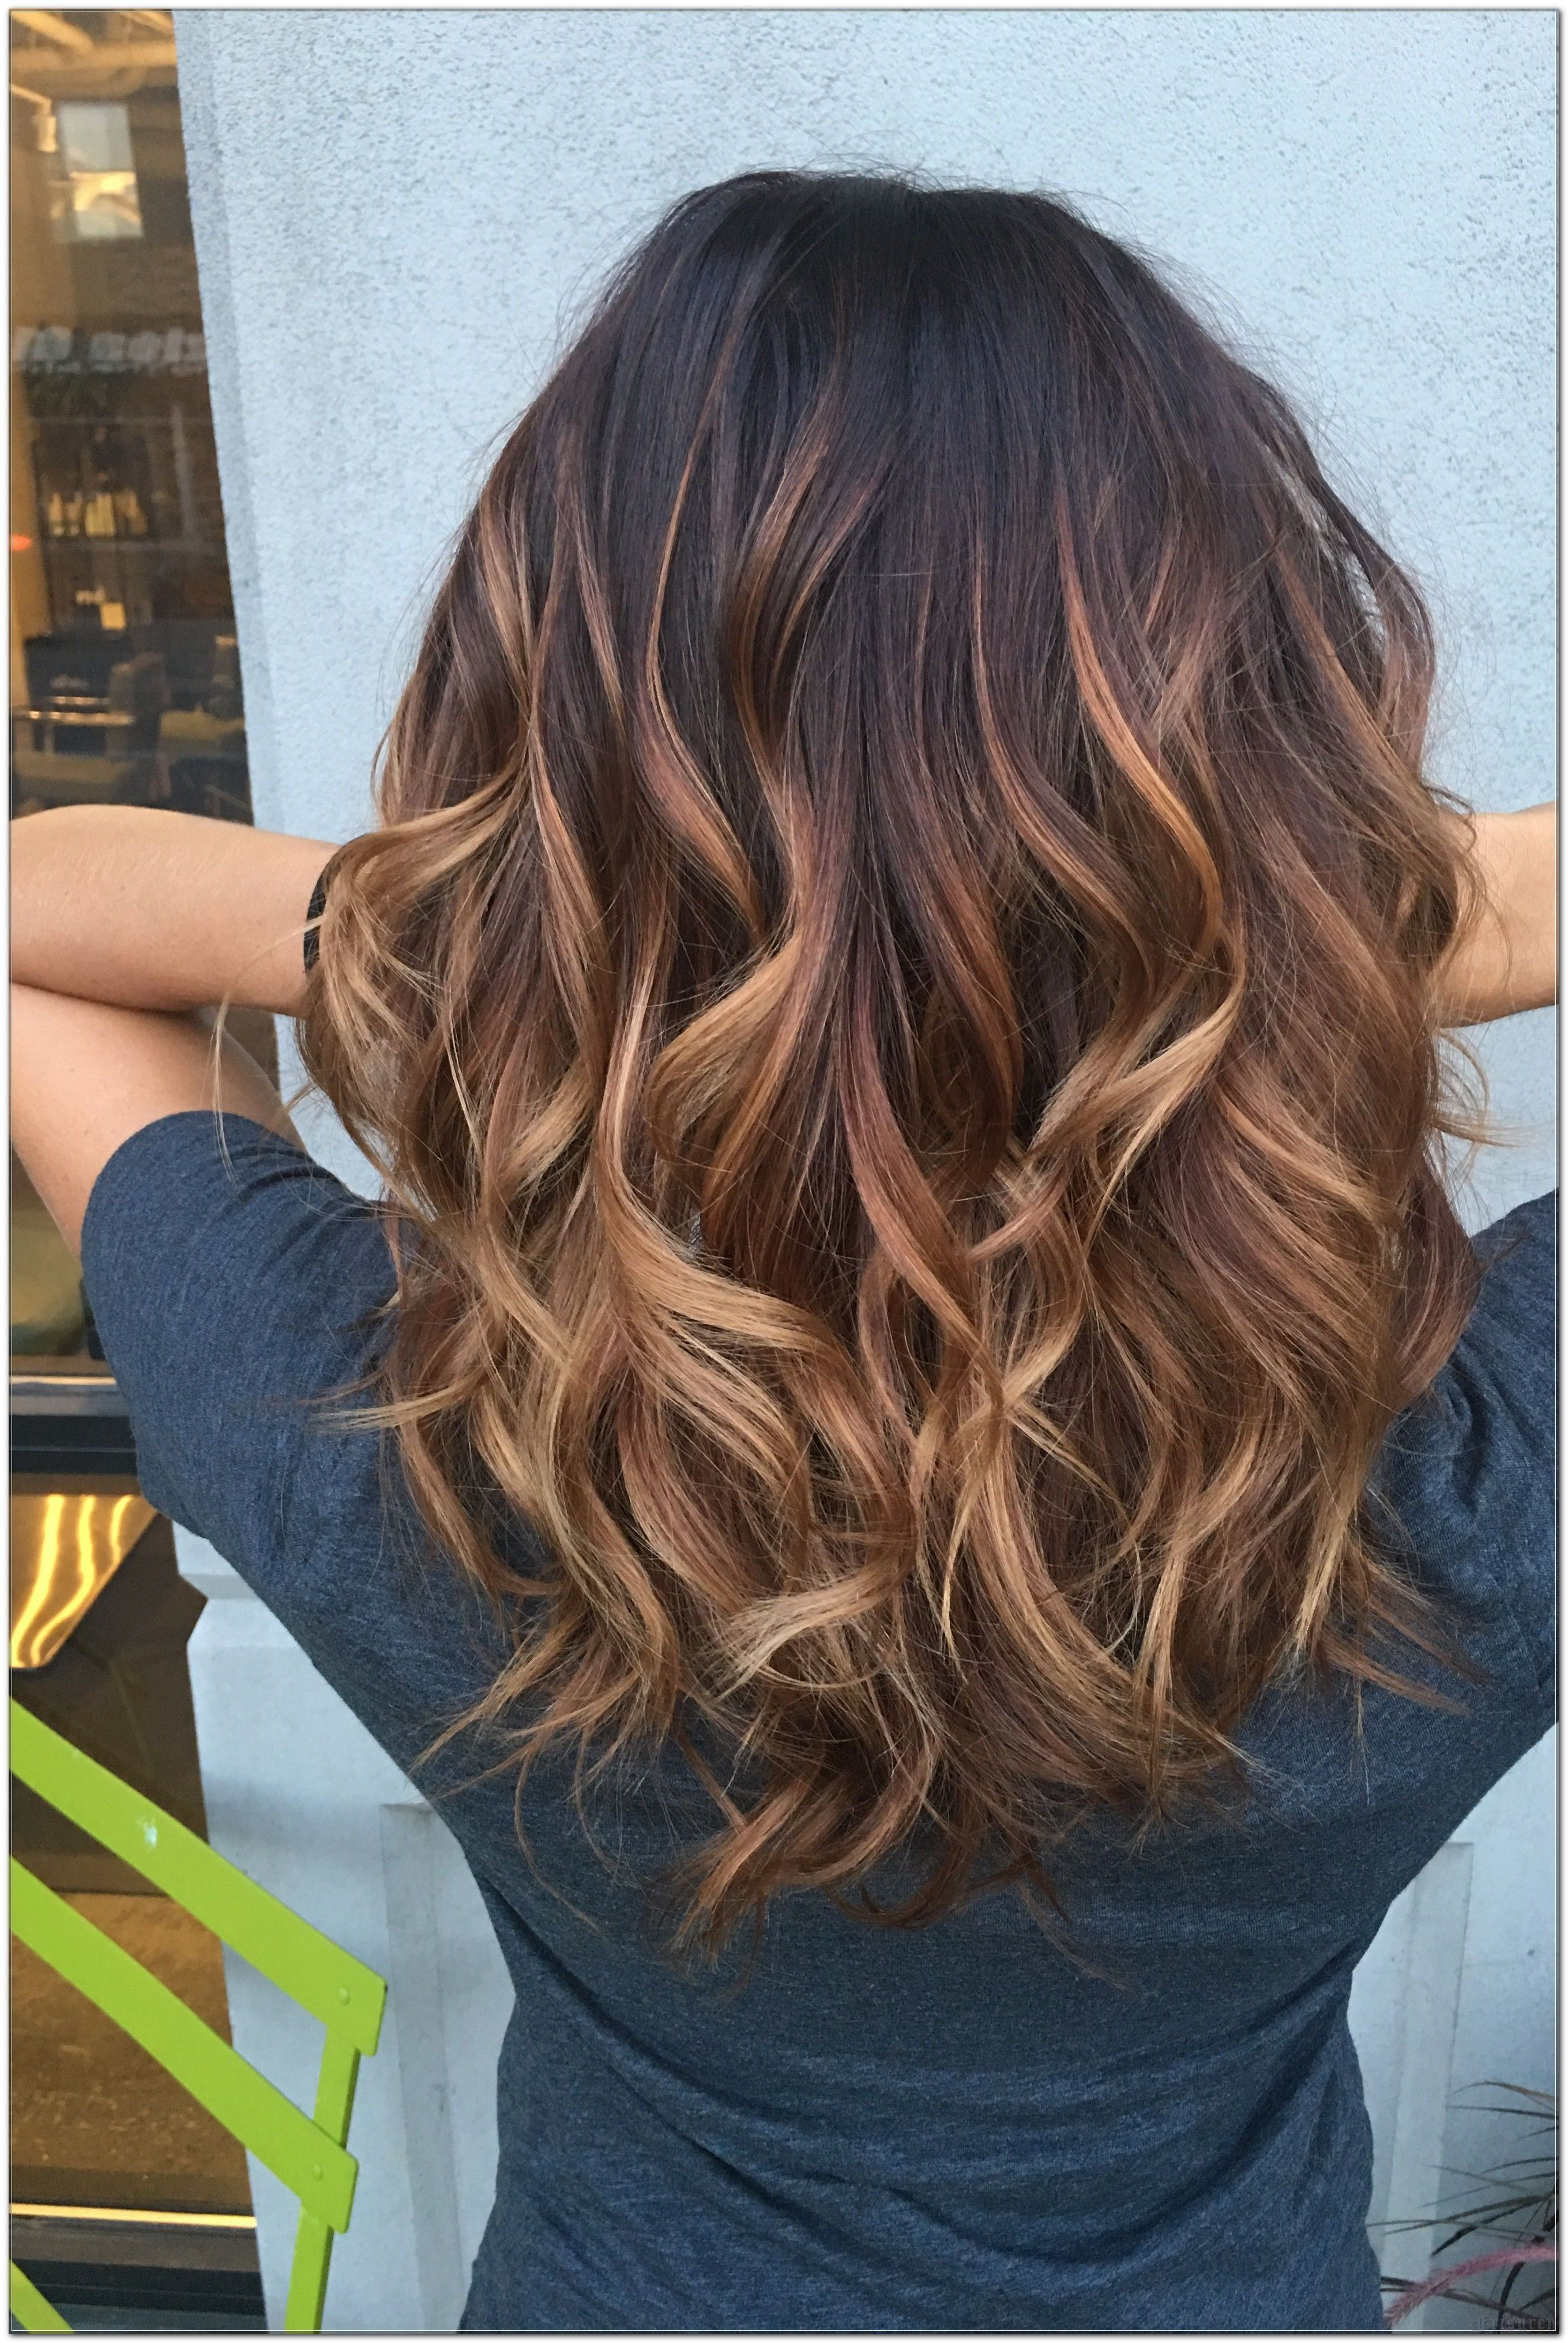 Is Frisuren Worth [$] To You? for 2021